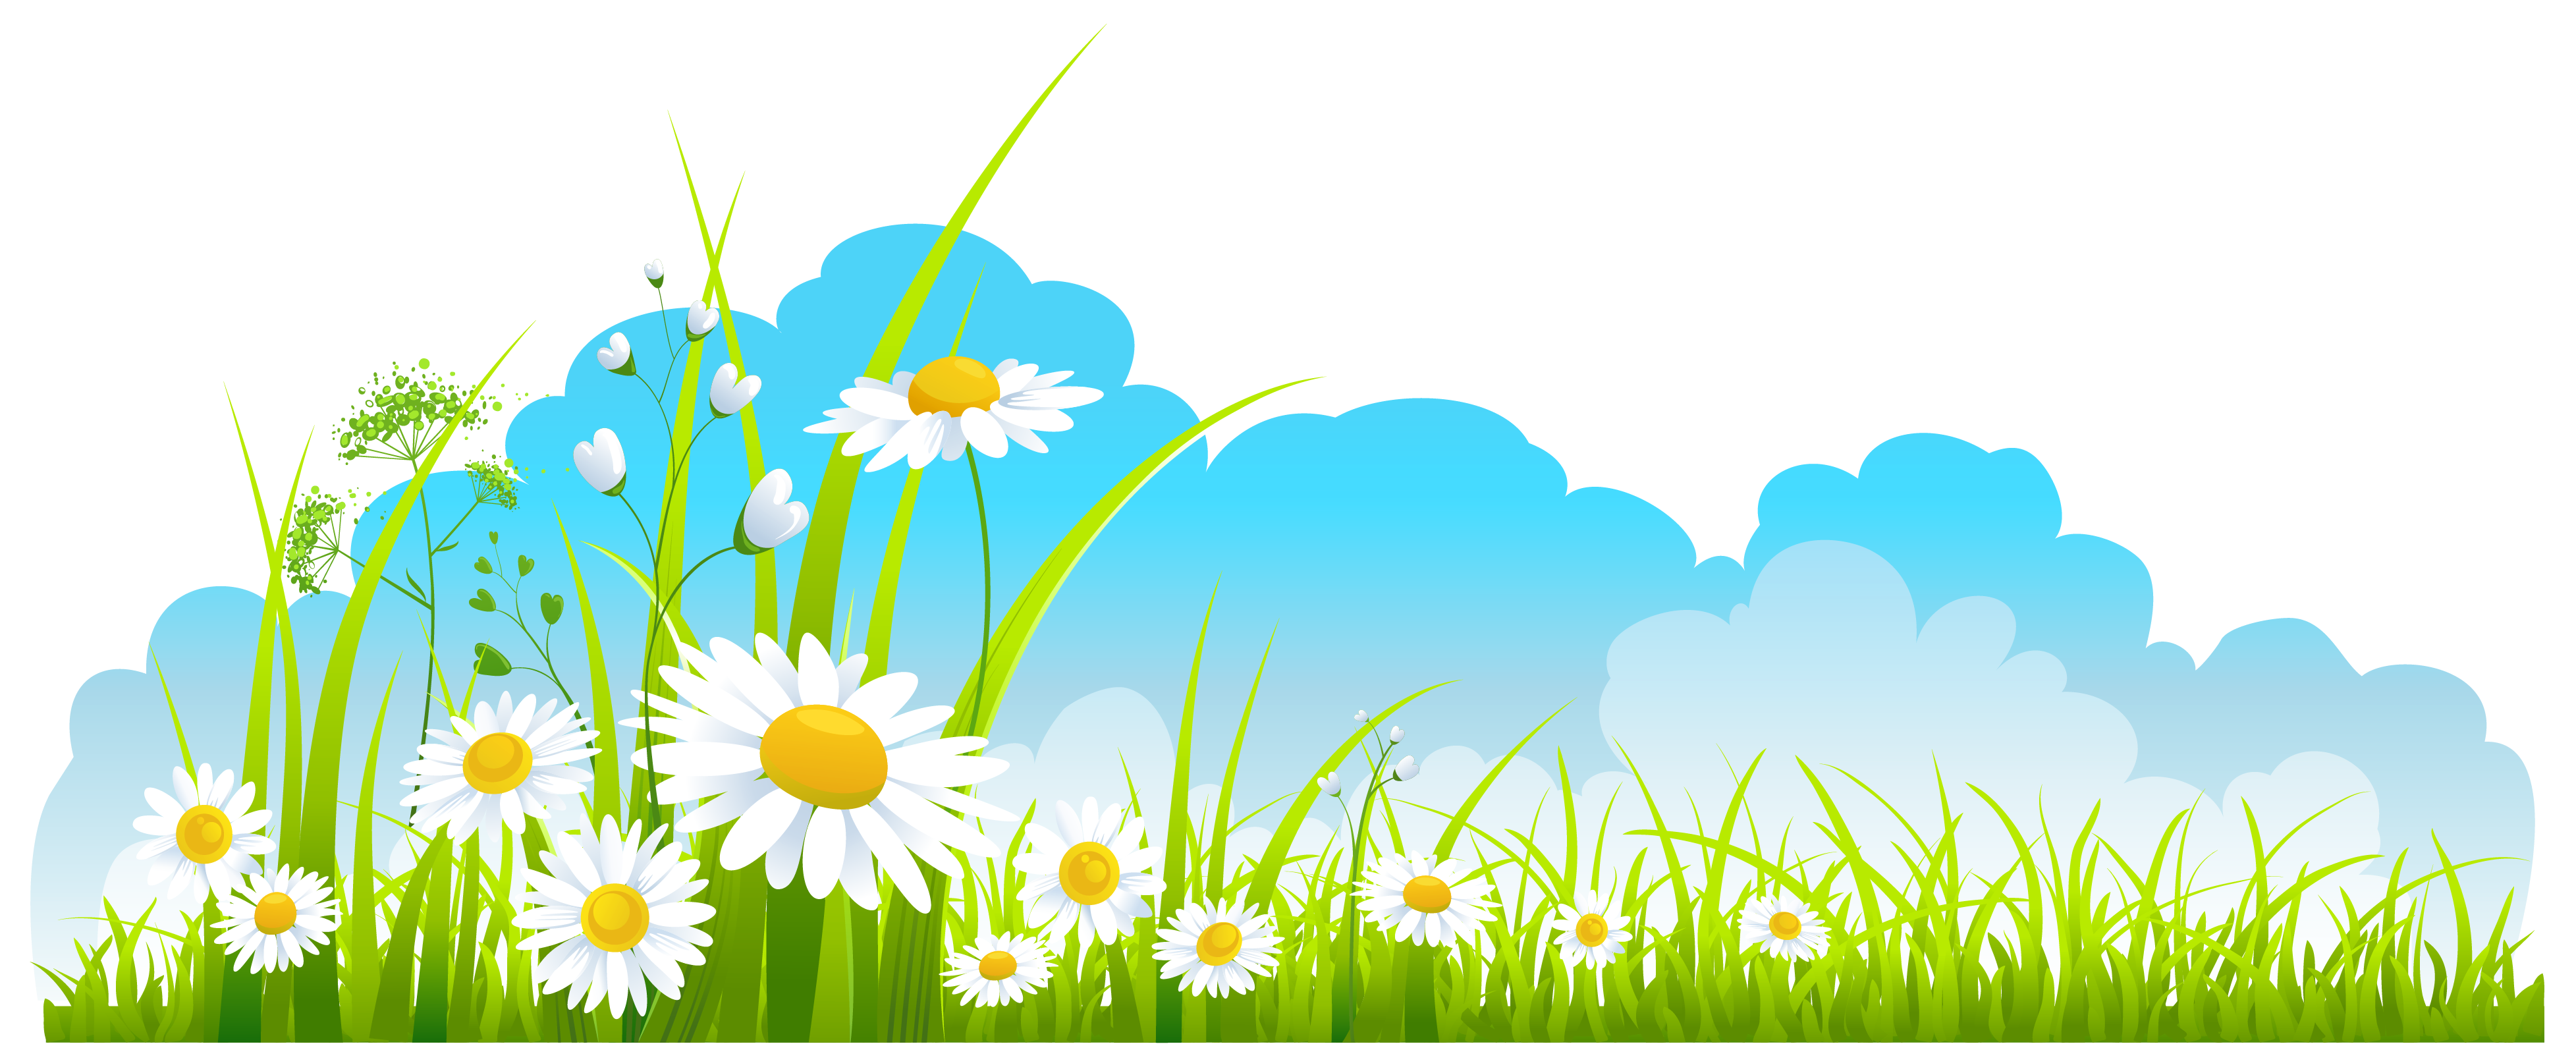 Free Image Of Spring Clipart-Free Image Of Spring Clipart-6